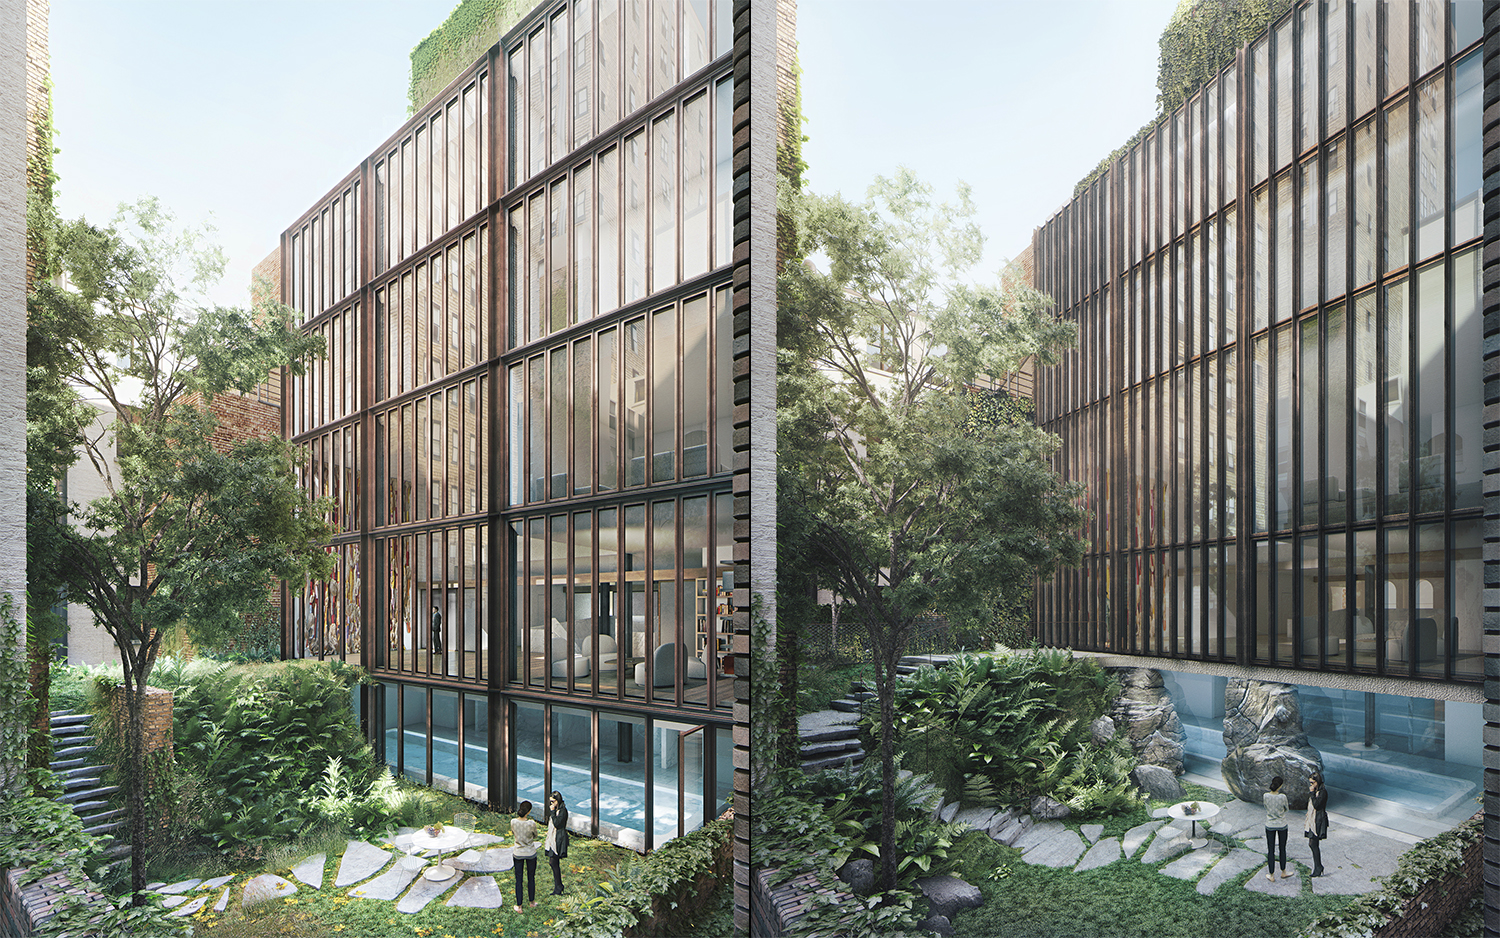 Previous and current proposals for 11-15 East 75th Street